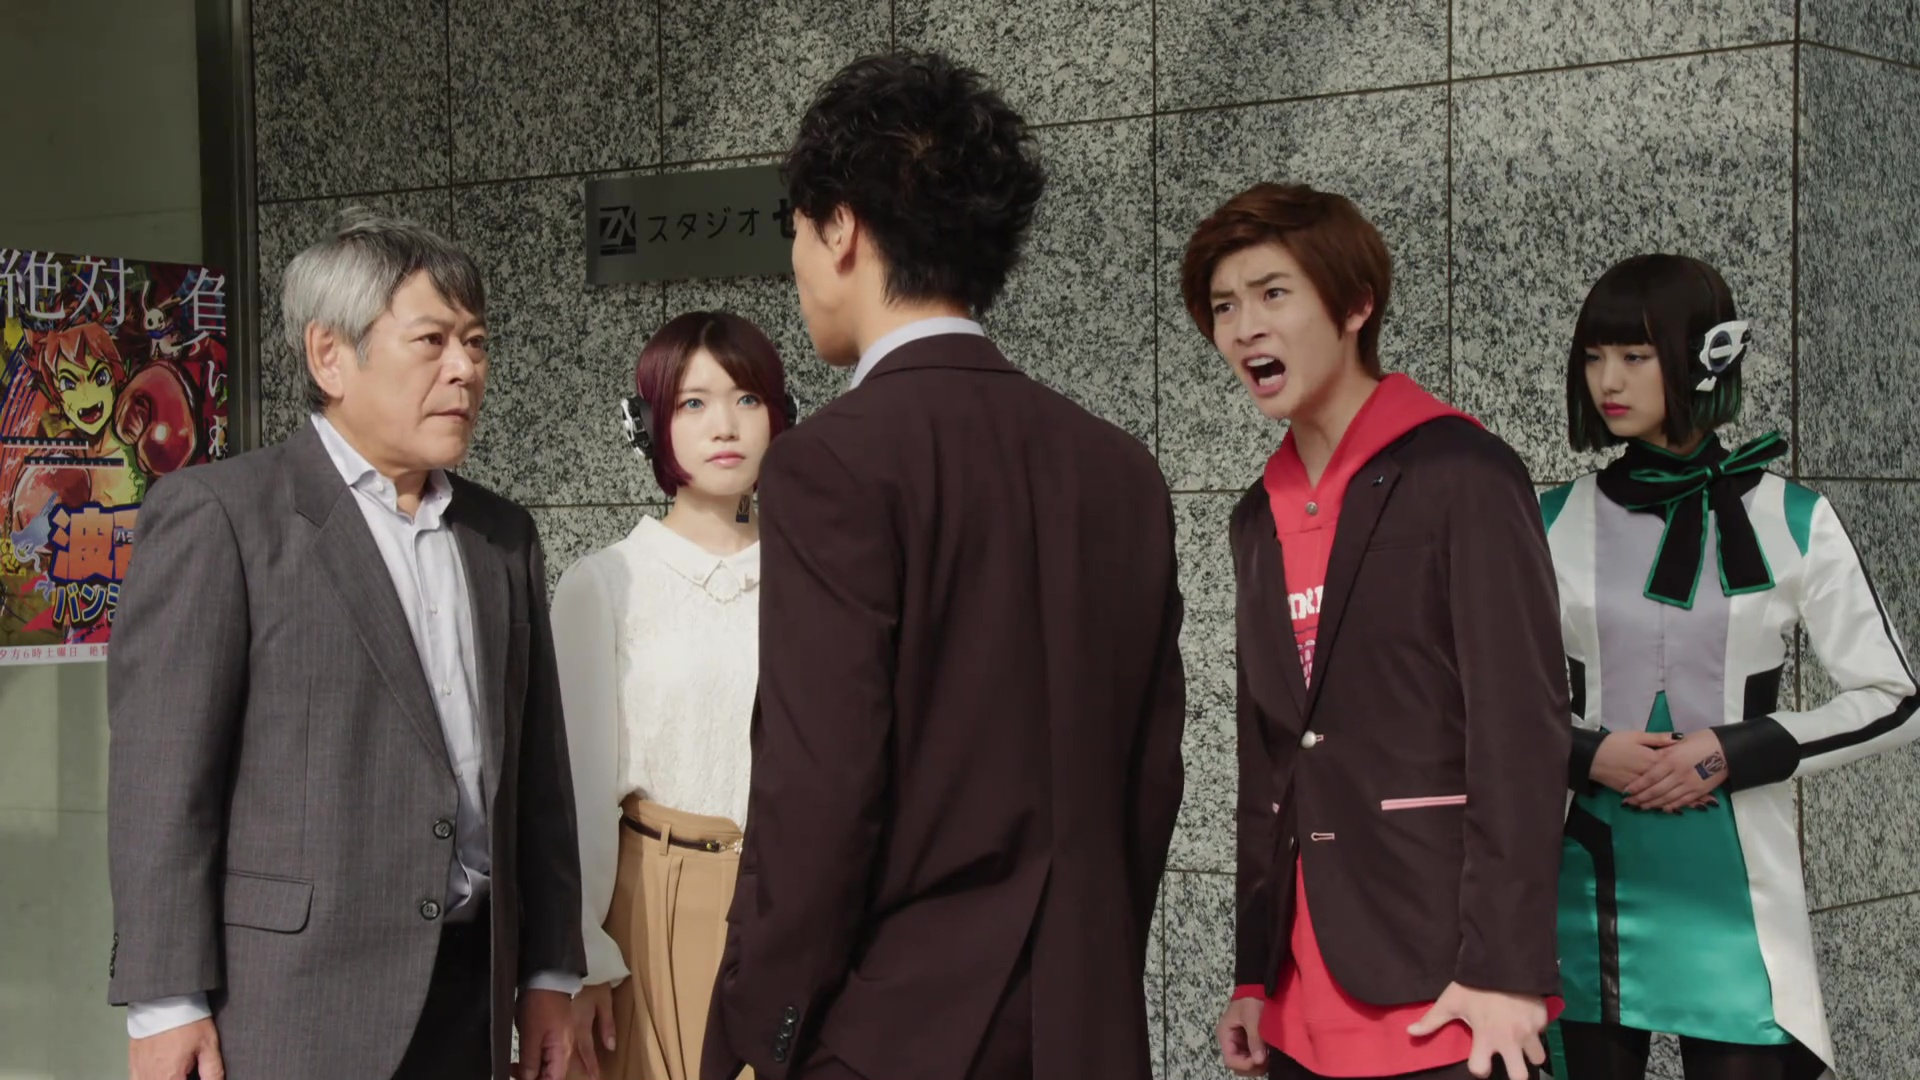 Kamen Rider Zero One Episode 6 Recap